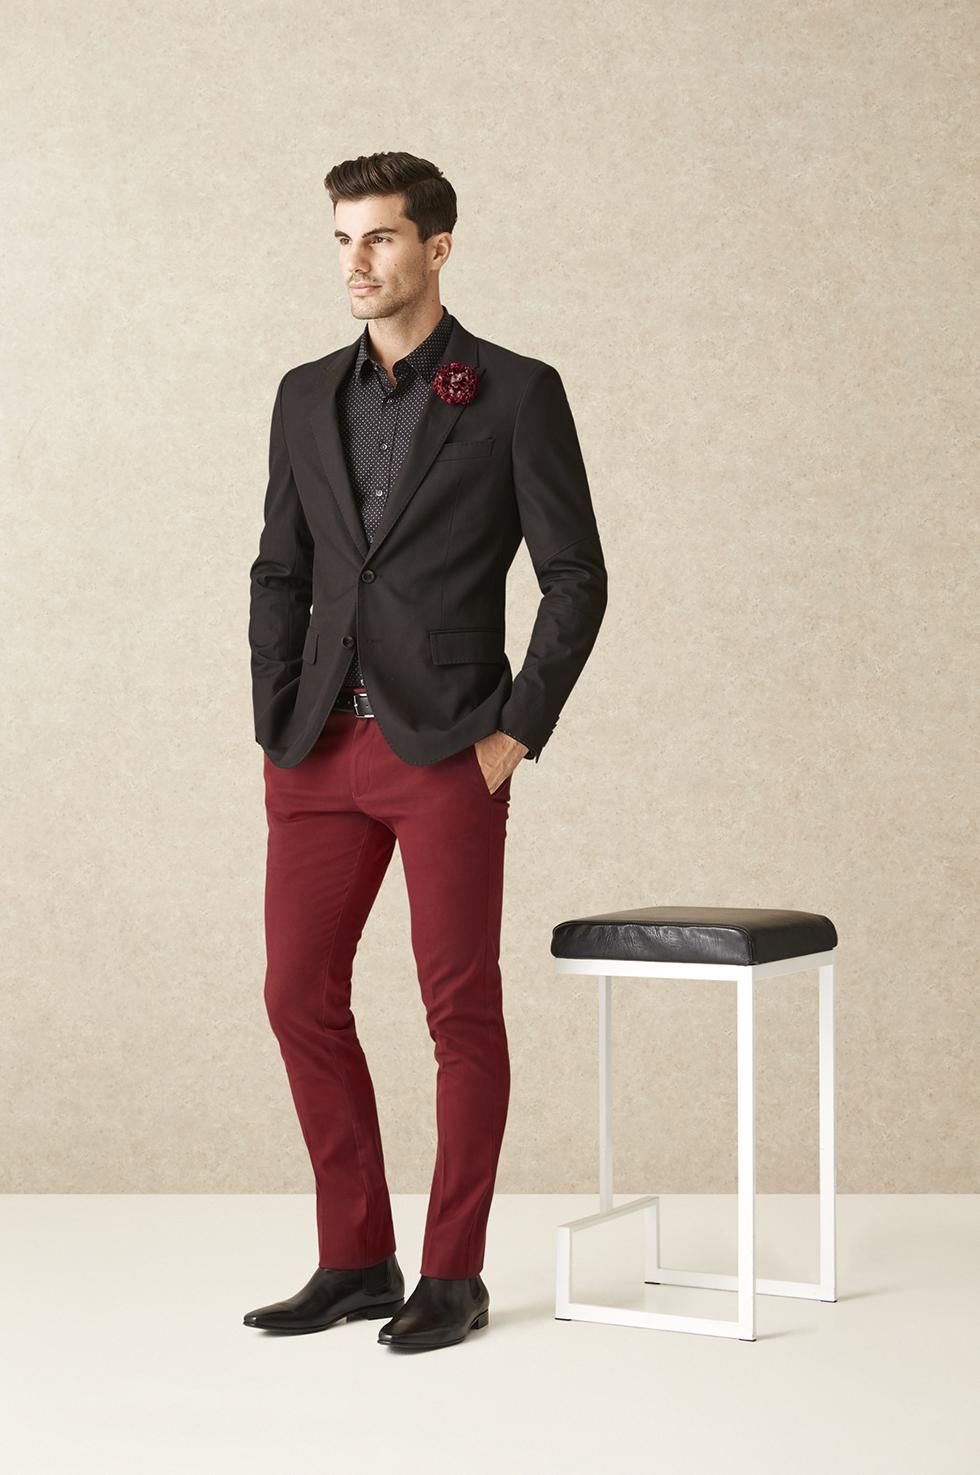 Lookbook Blazer Outfits Men Pants Outfit Men Red Pants Men